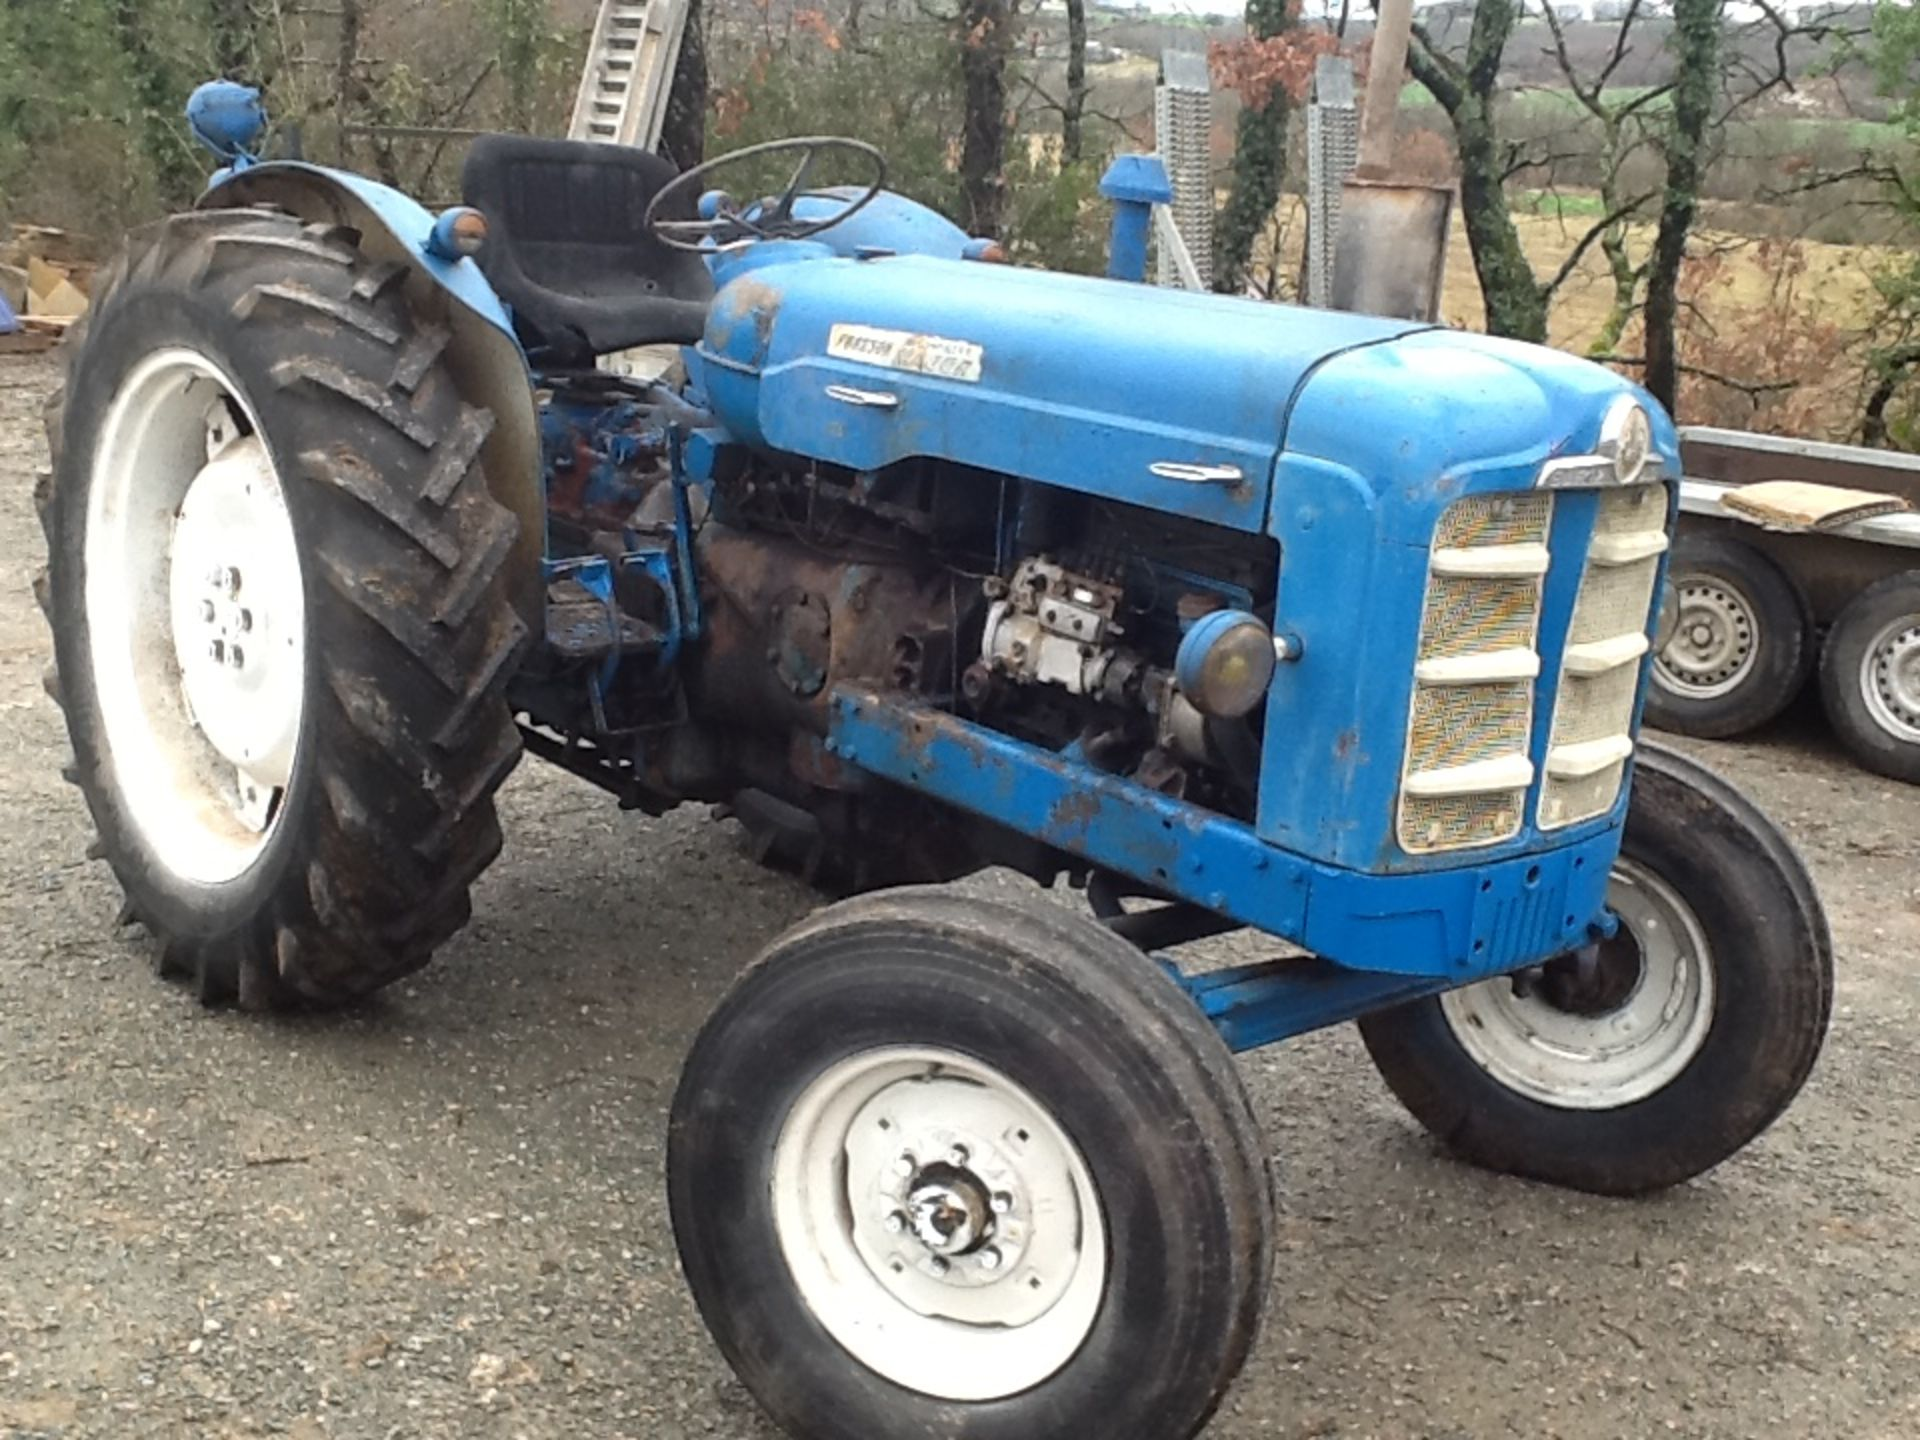 1964 FORDSON Super Major 4cylinder diesel TRACTOR Serial No. 08D954183 This New Performance is - Image 2 of 2